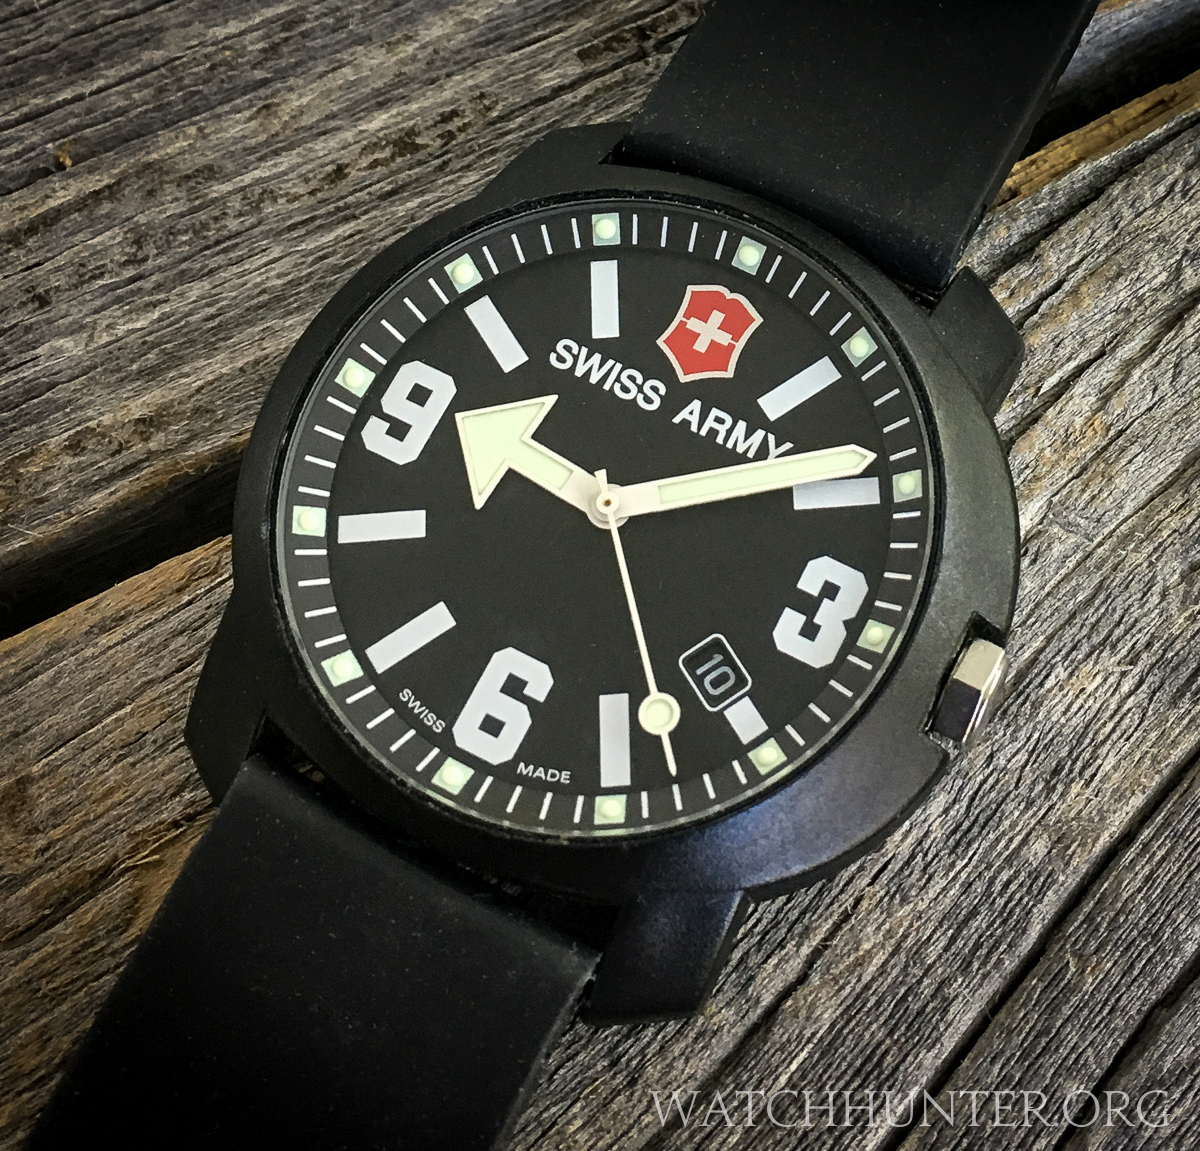 Meet The Watch Victorinox Swiss Army Recon Watch With The